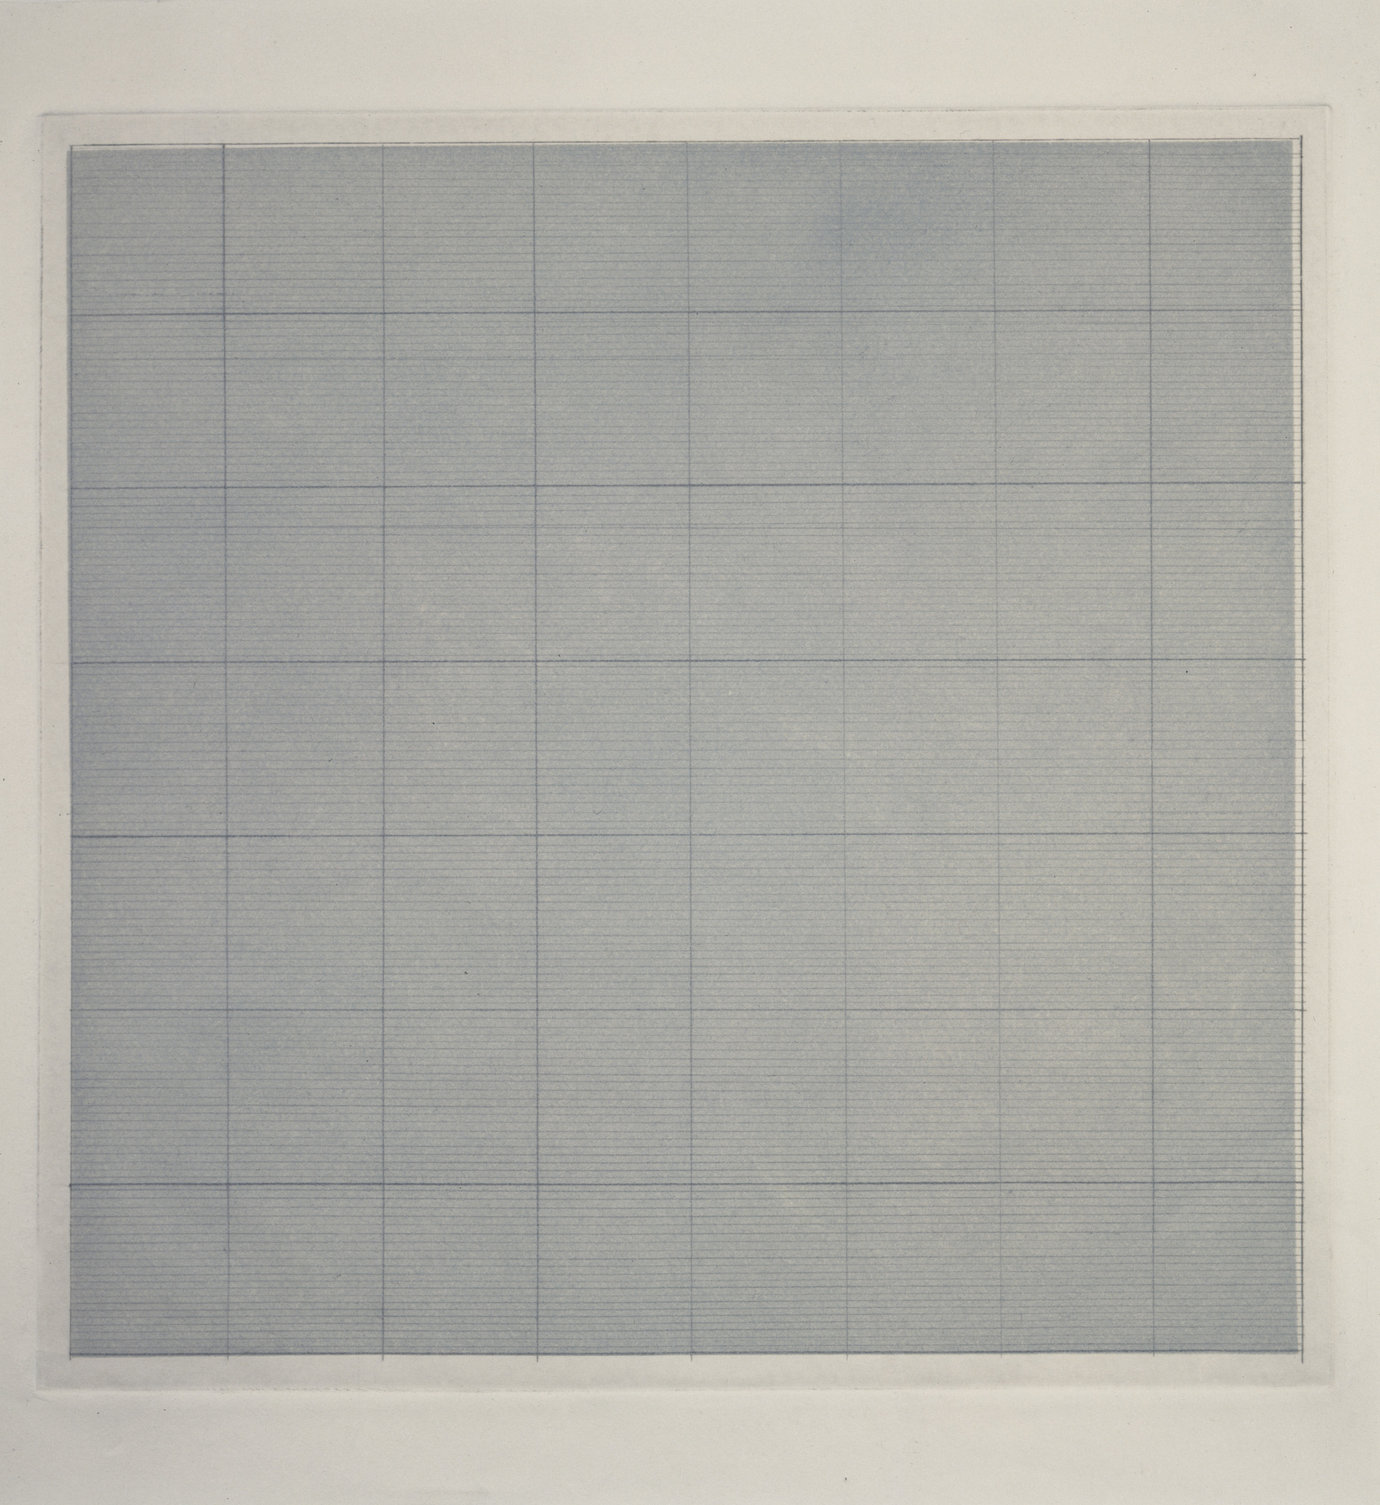 ", 1961. pencil on aquatint, 12-3/4"" x 12-3/4"" (32.4 cm x 32.4 cm)."